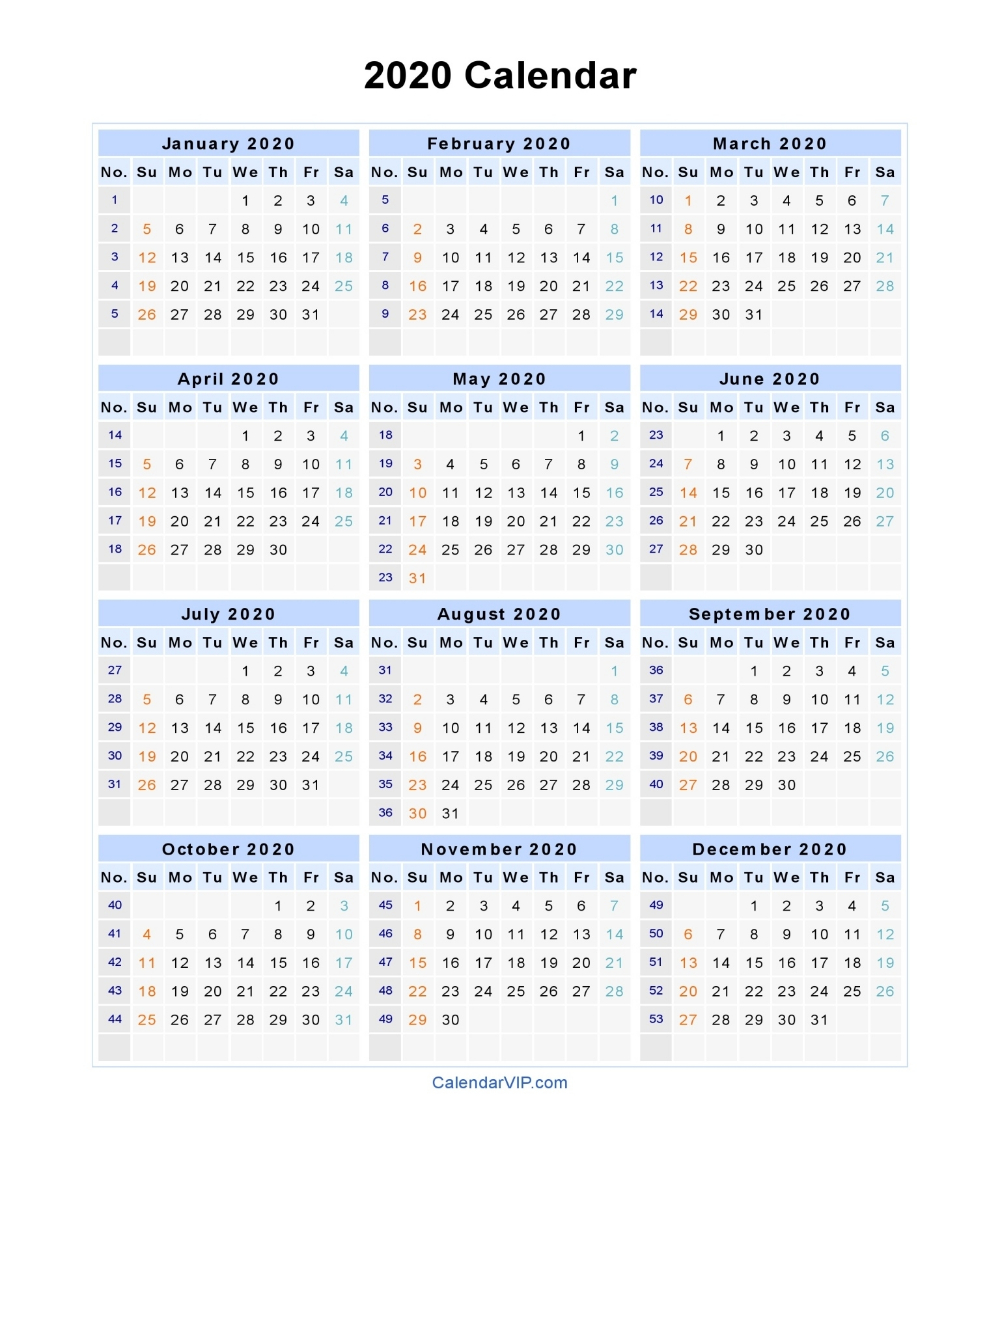 2020 Calendar - Blank Printable Calendar Template In Pdf pertaining to 2020 Calendar By Month And Week Number Excel